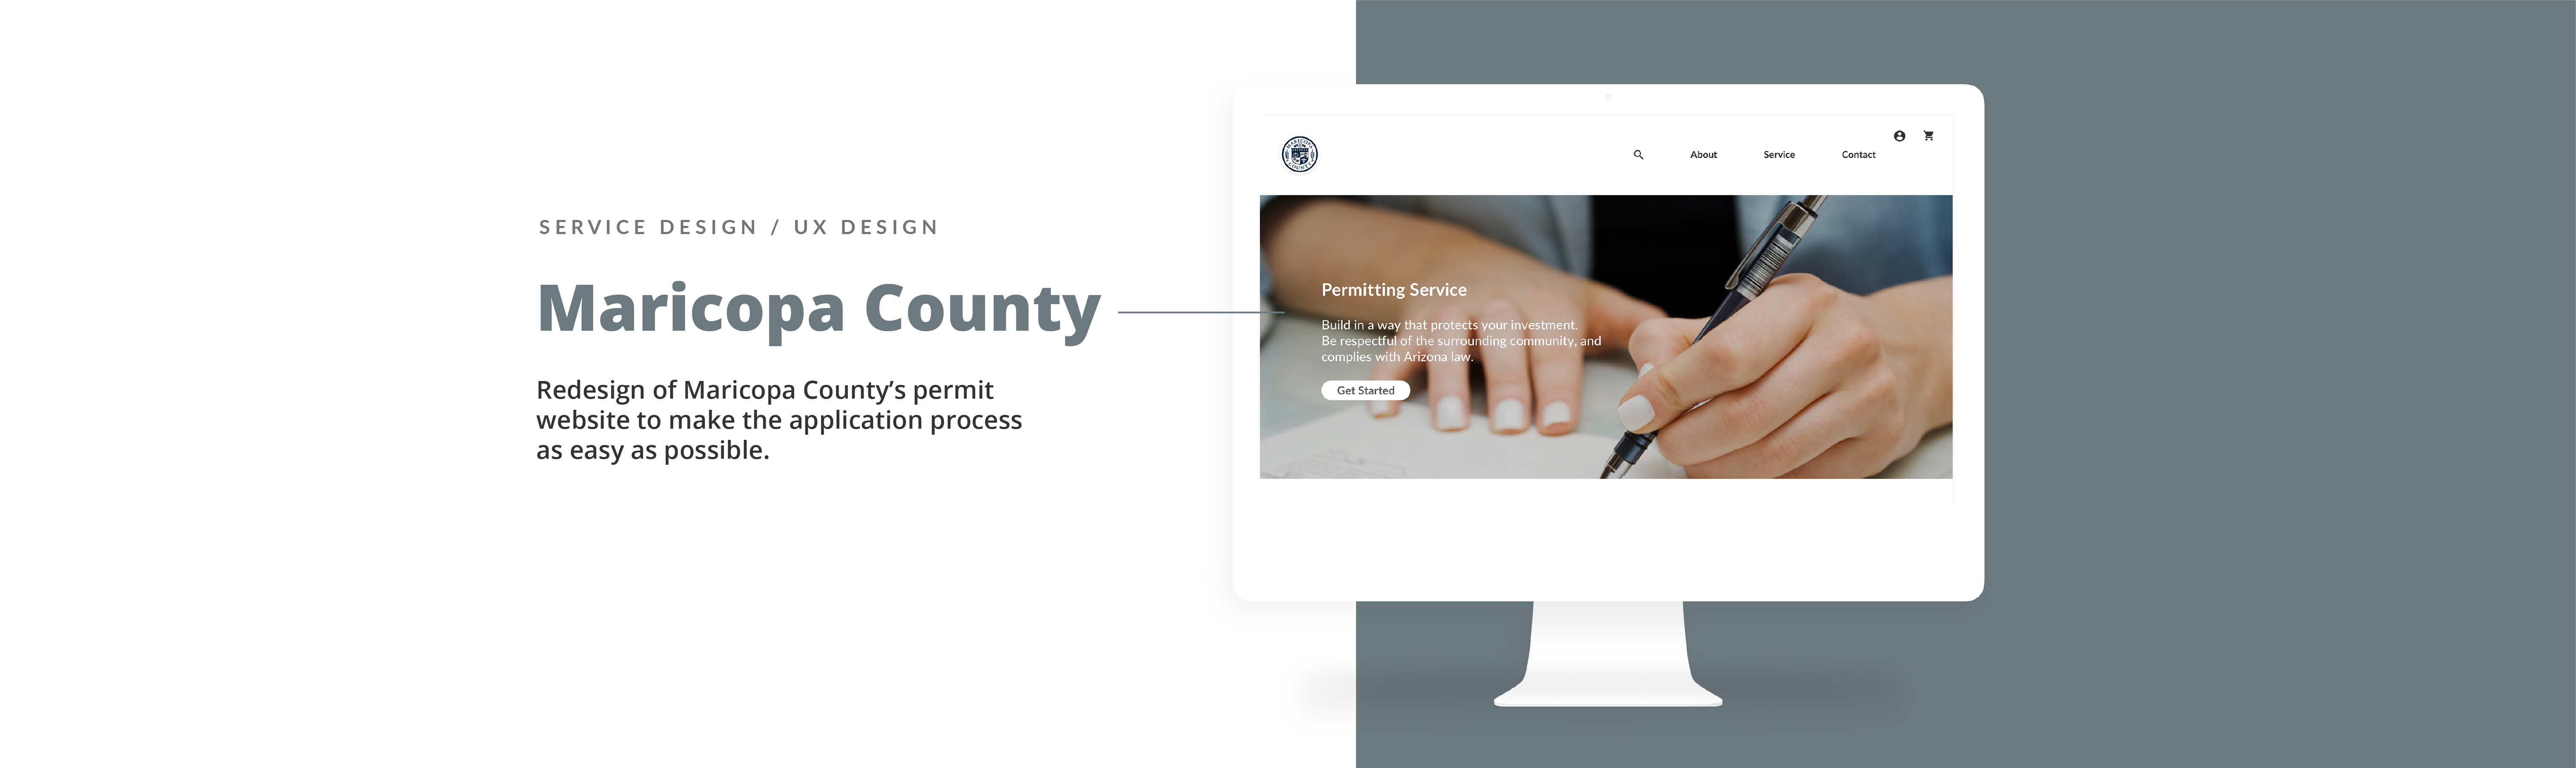 Collaboration with Maricopa county to redesign its permit website to make the application process as easy as possible. Preview mockup screens of the project on the side.